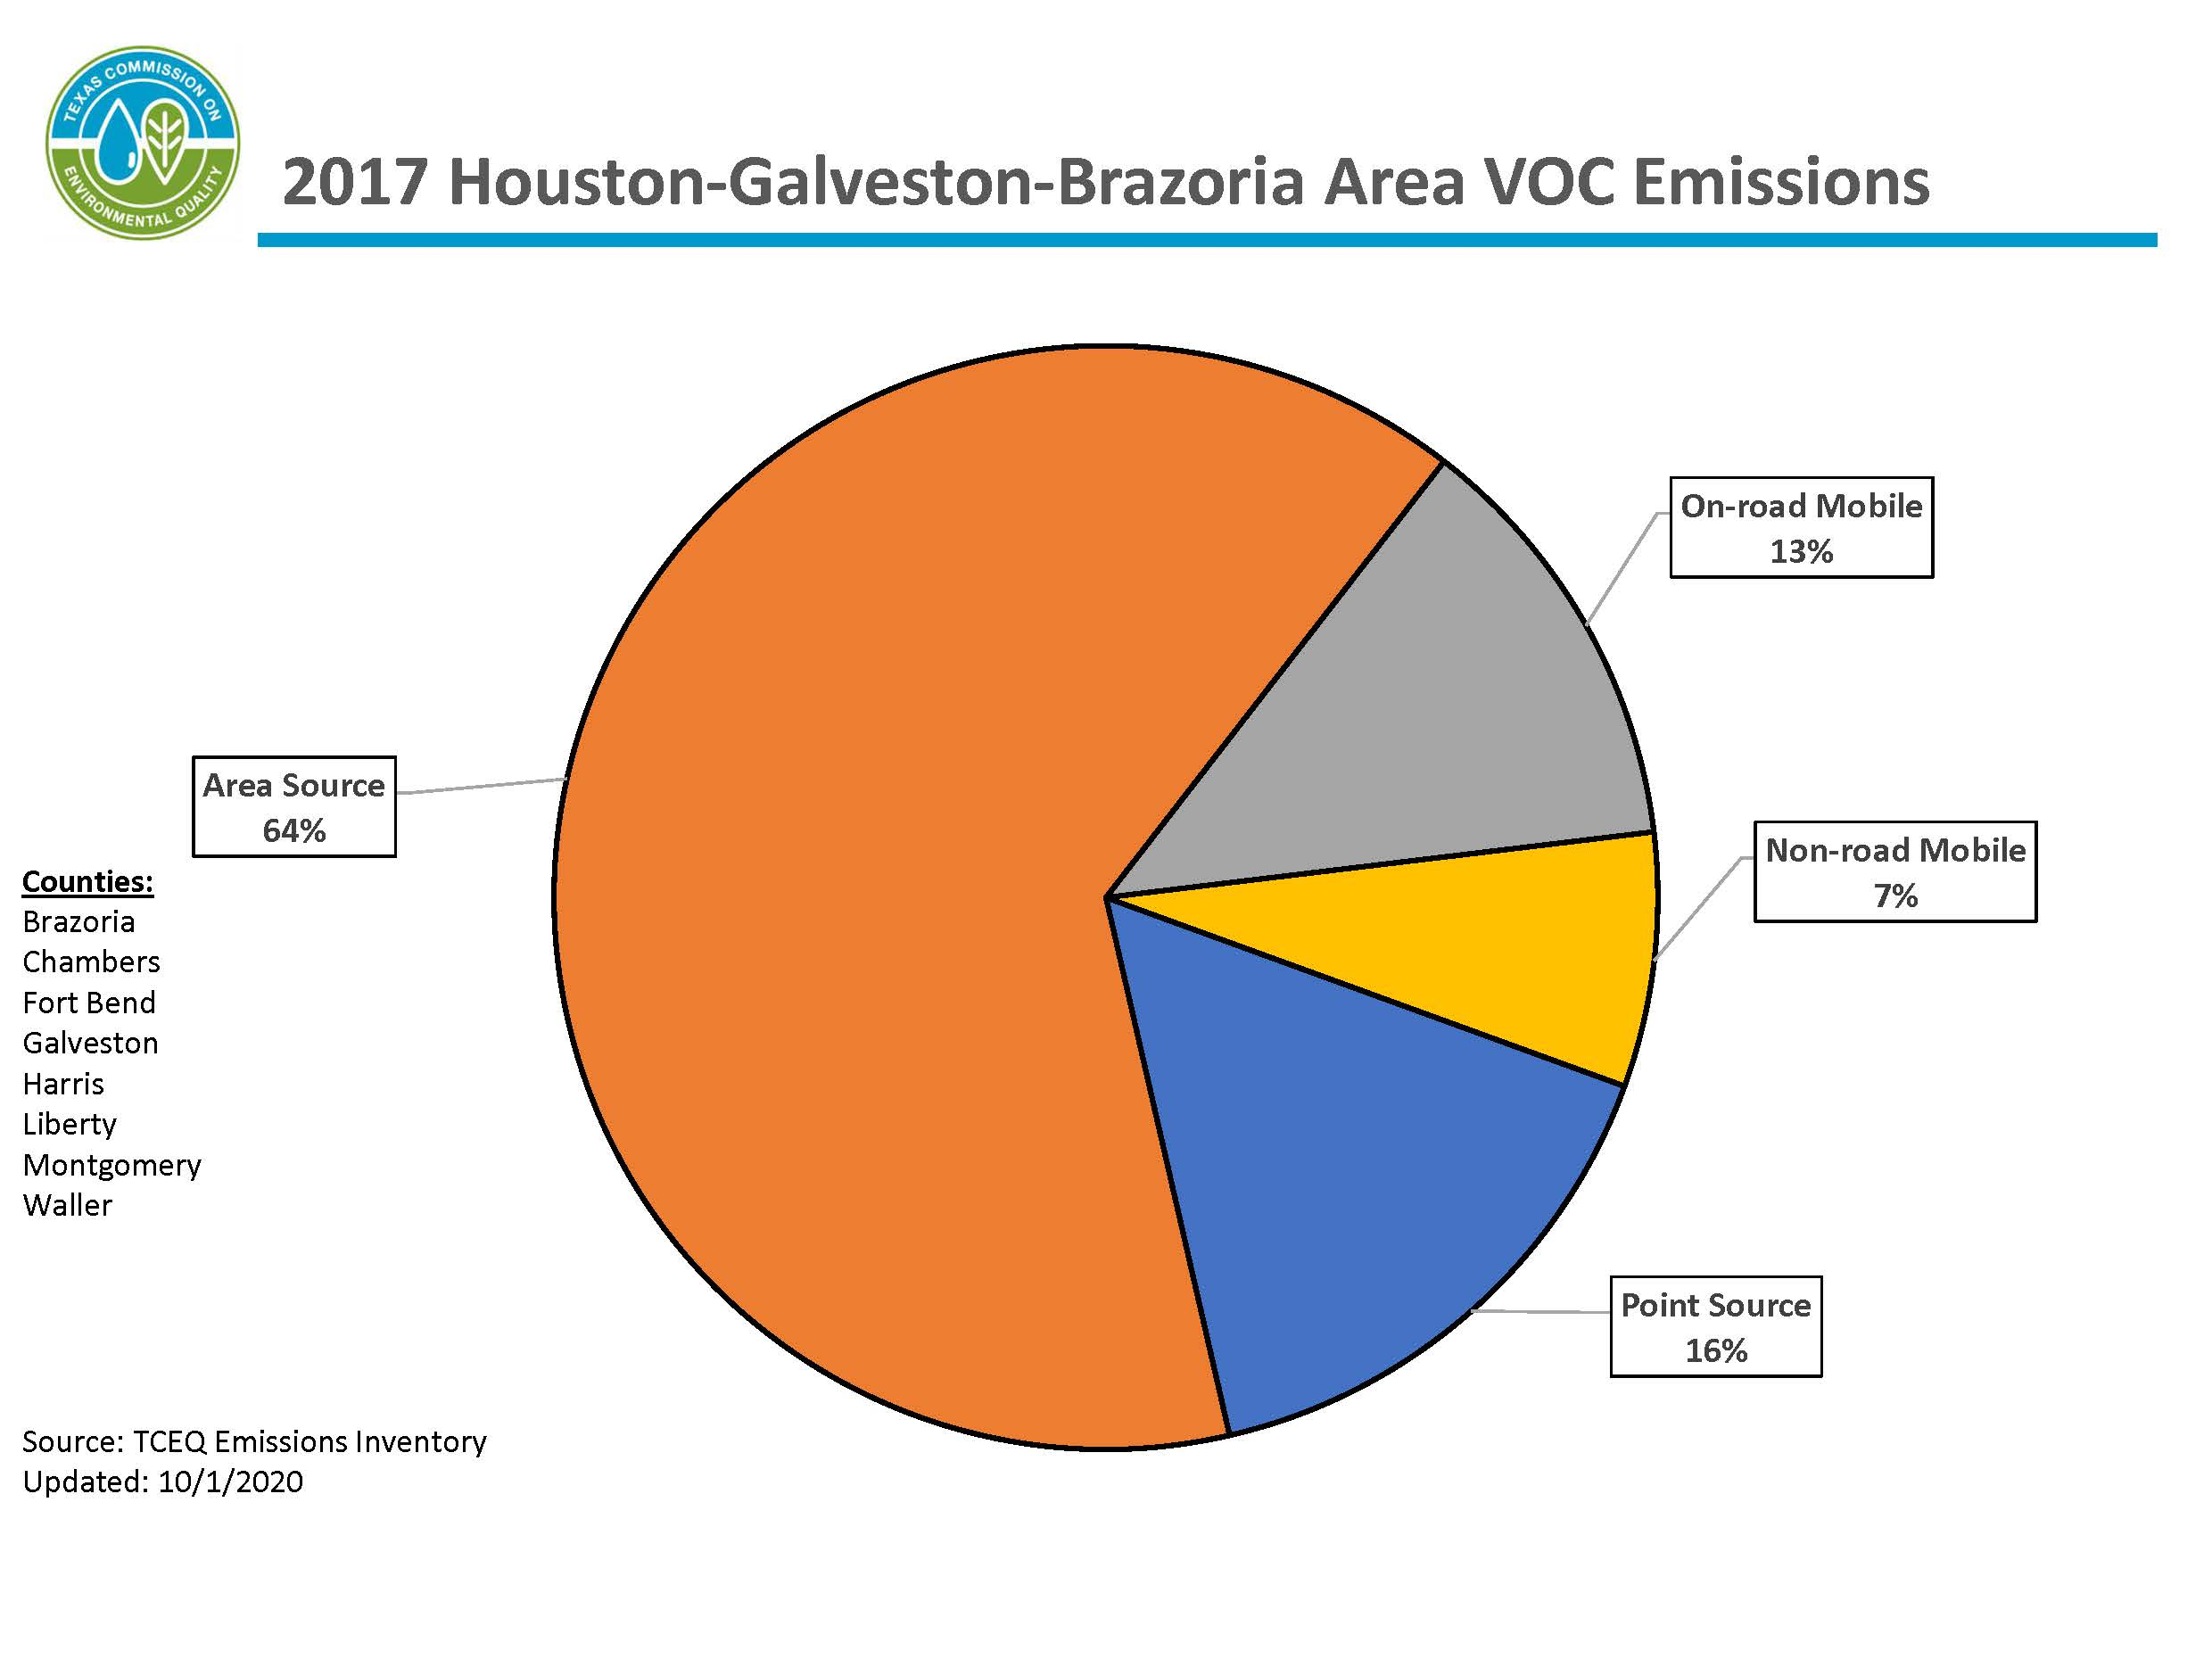 This chart represents calendar year 2017 volatile organic compound emissions for the eight-county Houston-Galveston-Brazoria area. The HGB area includes Brazoria, Chambers, Fort Bend, Galveston, Harris, Liberty, Montgomery, and Waller counties. 64 percent of emissions are from area sources, 20 percent of emissions are from mobile sources, and 16 percent of emissions are from point sources.